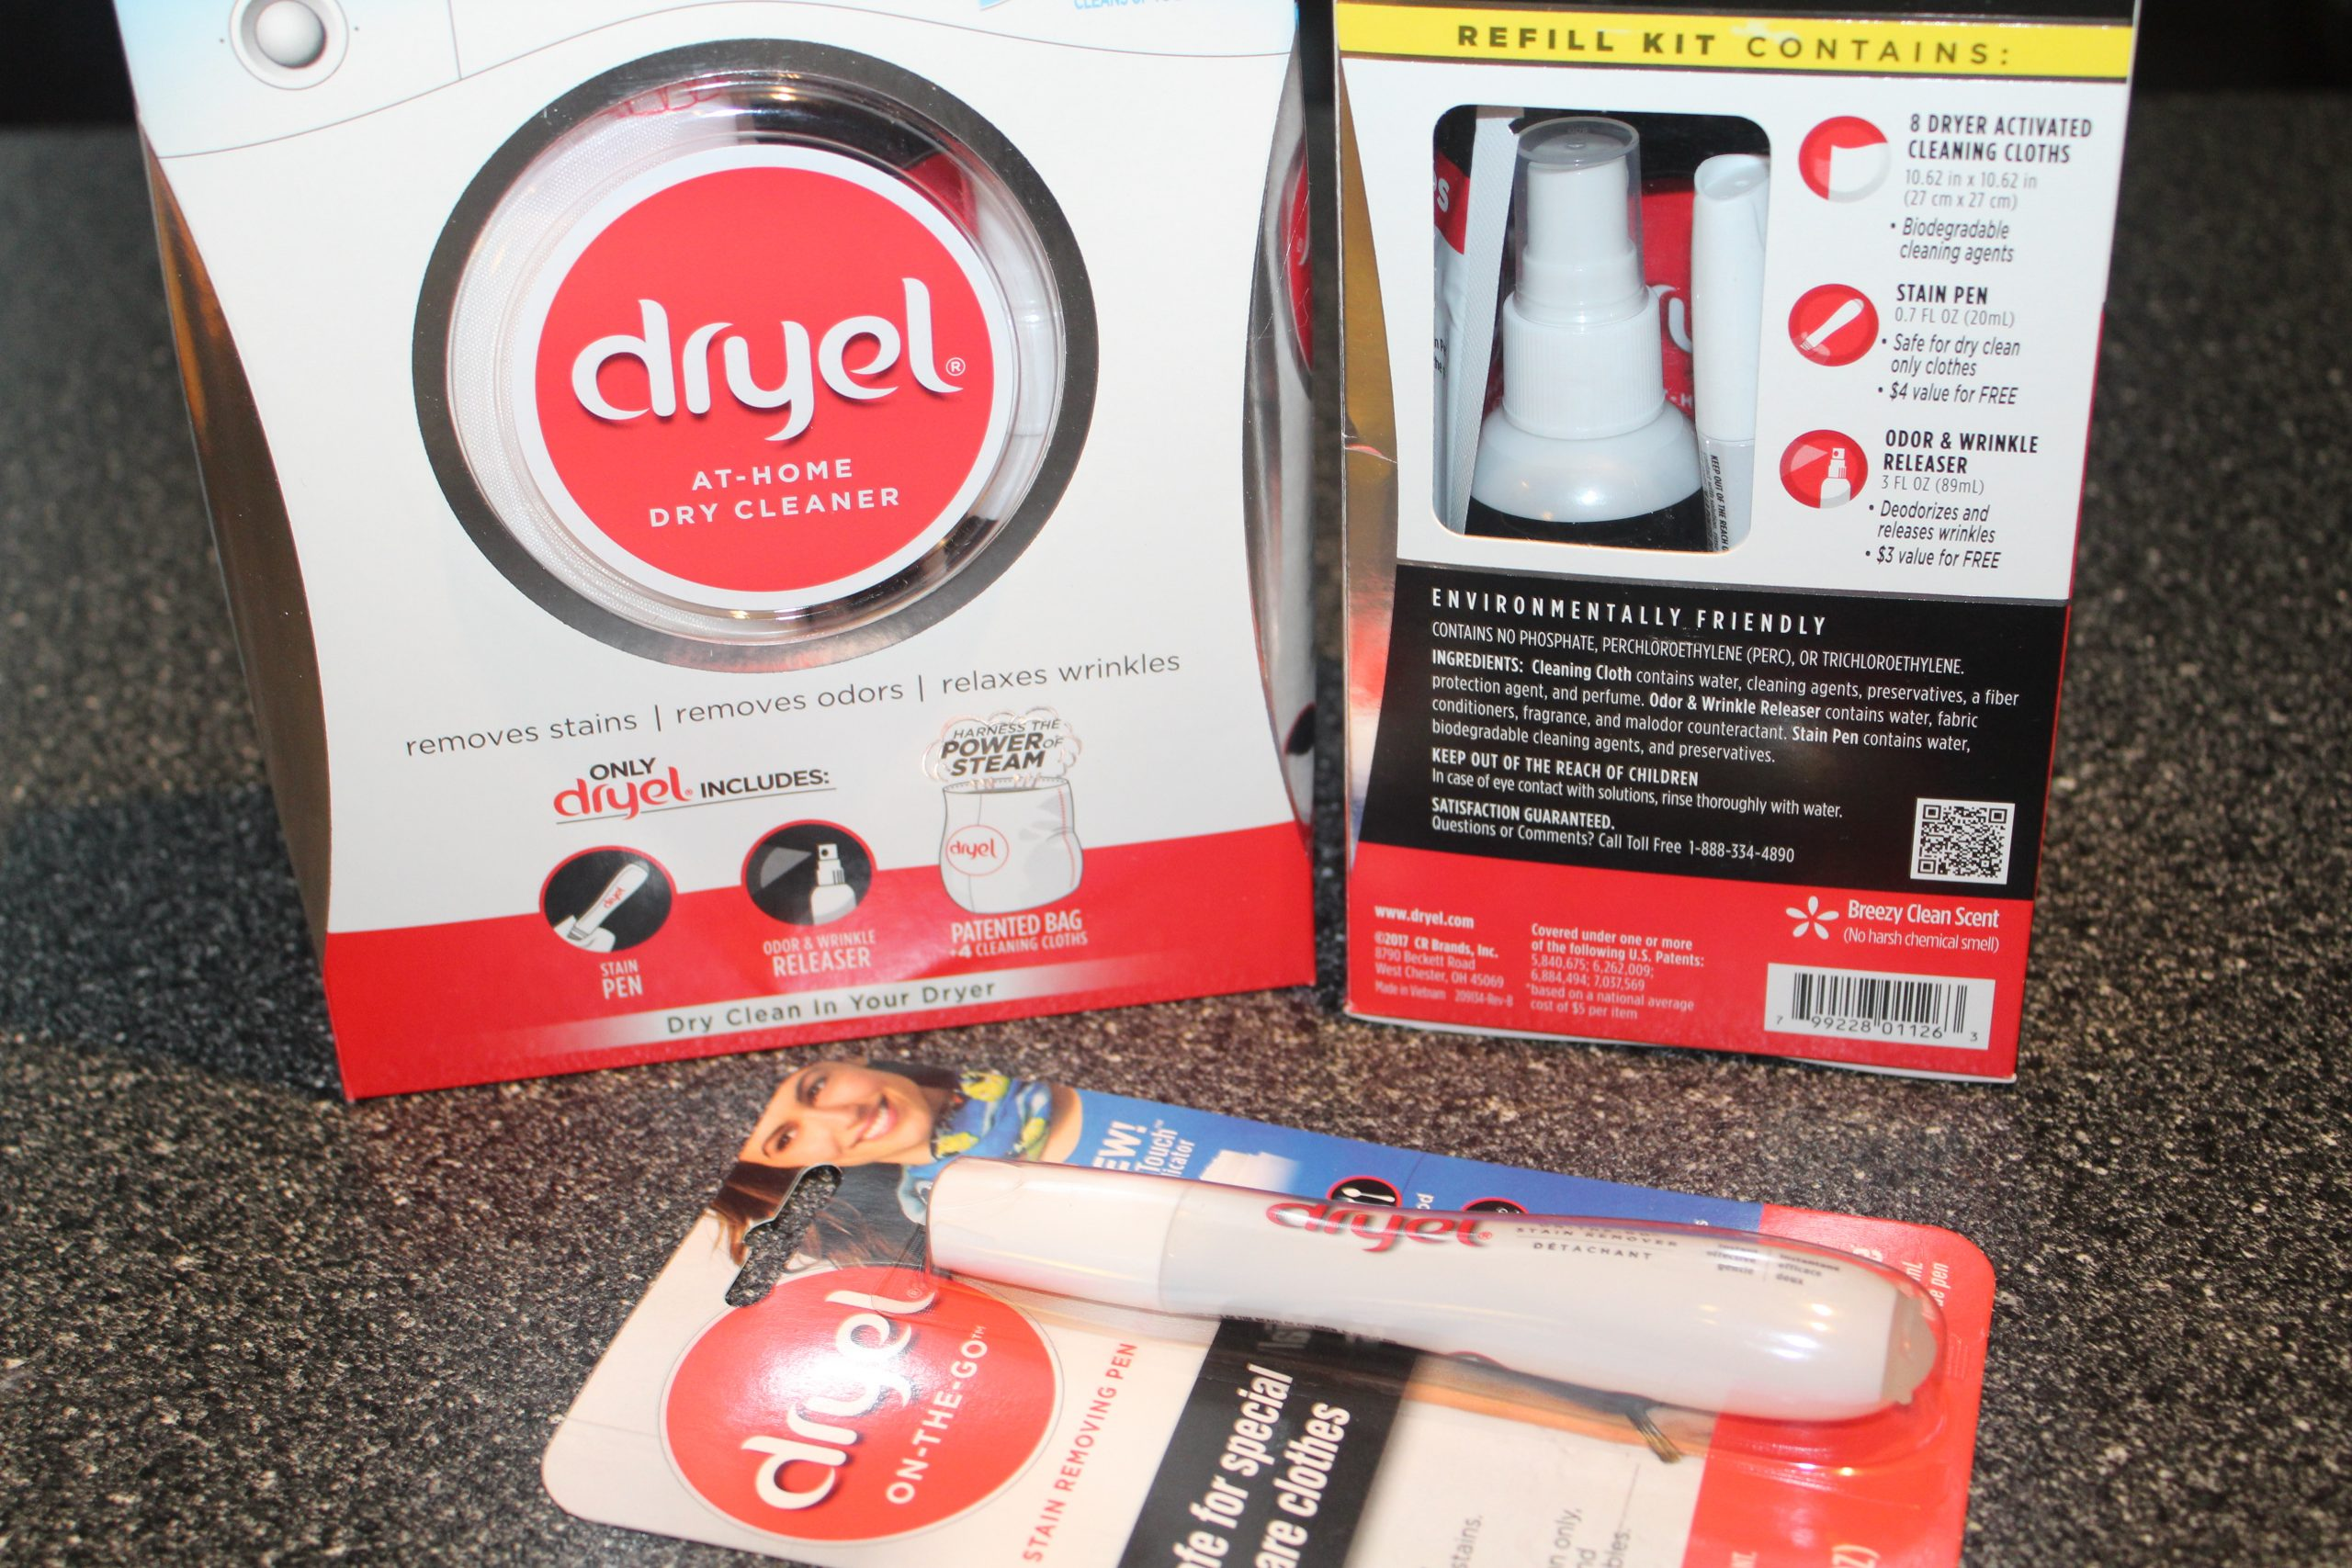 Dryel At Home Dry Cleaner #Review #HGG19 @dryel